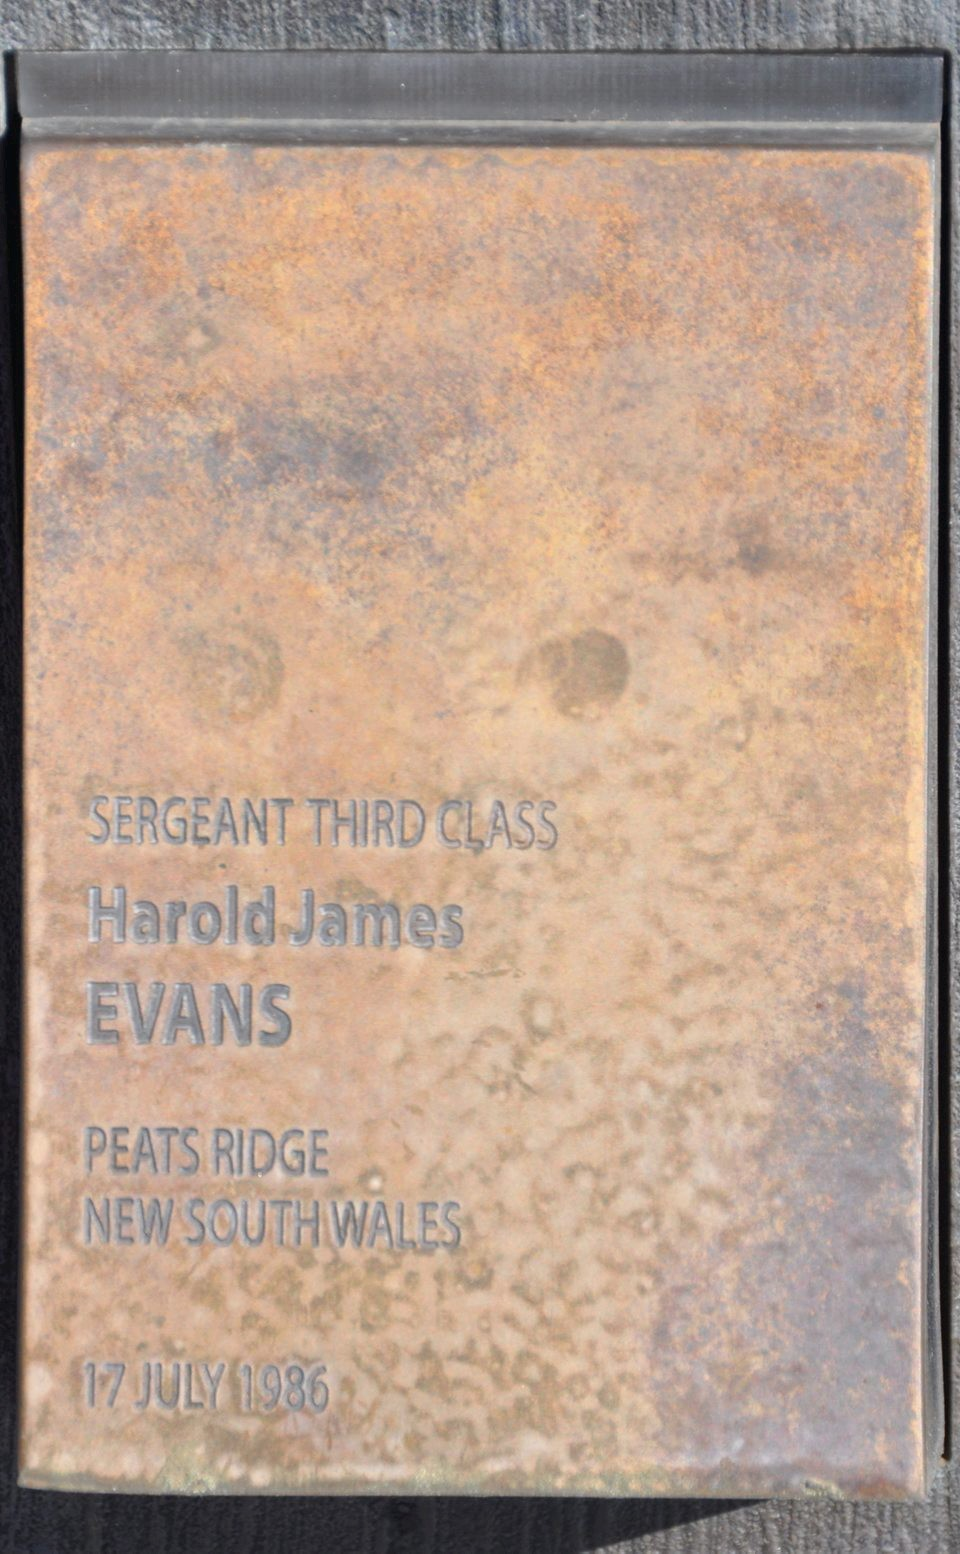 Sgt Harold James Evans 'touch stone' at the Canberra Police Wall of Remembrance.